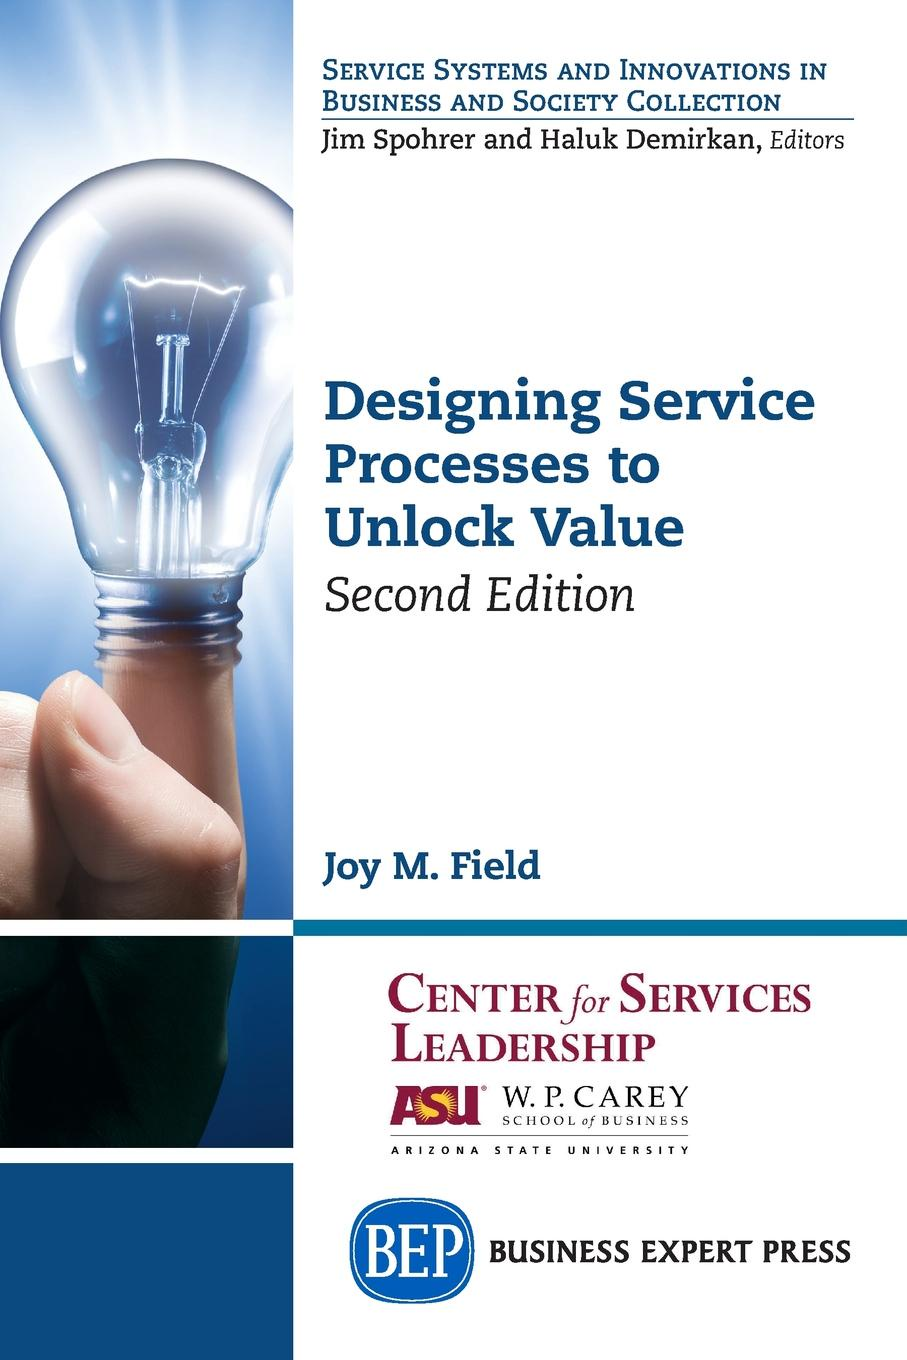 лучшая цена Joy M. Field Designing Service Processes to Unlock Value, Second Edition